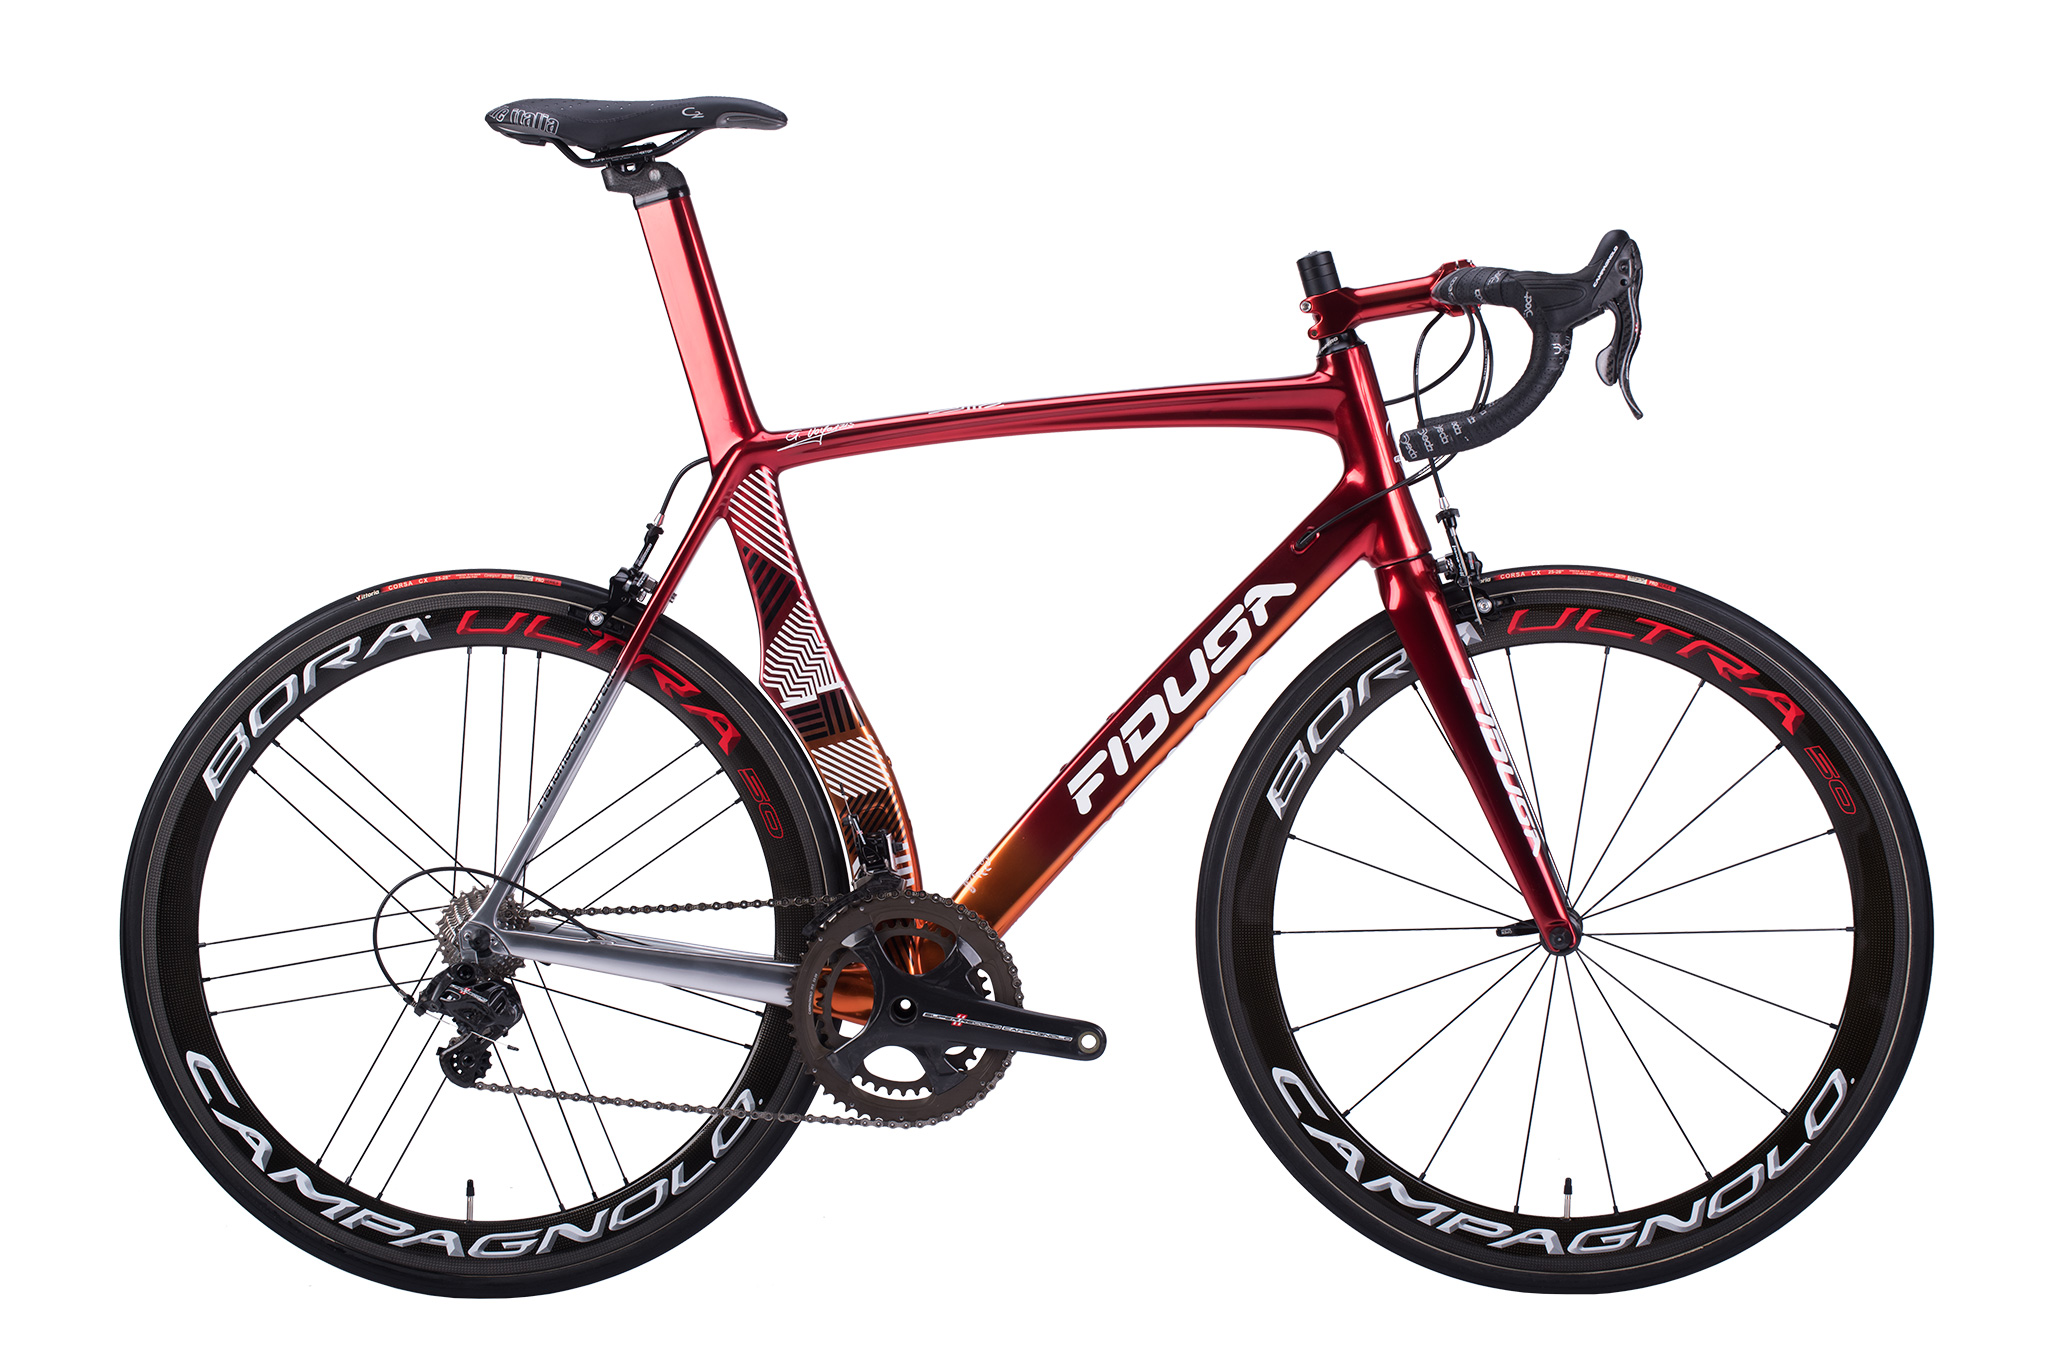 handmade-carbon-road-bicycle13 Veleno Carbon Road Race Bicycle